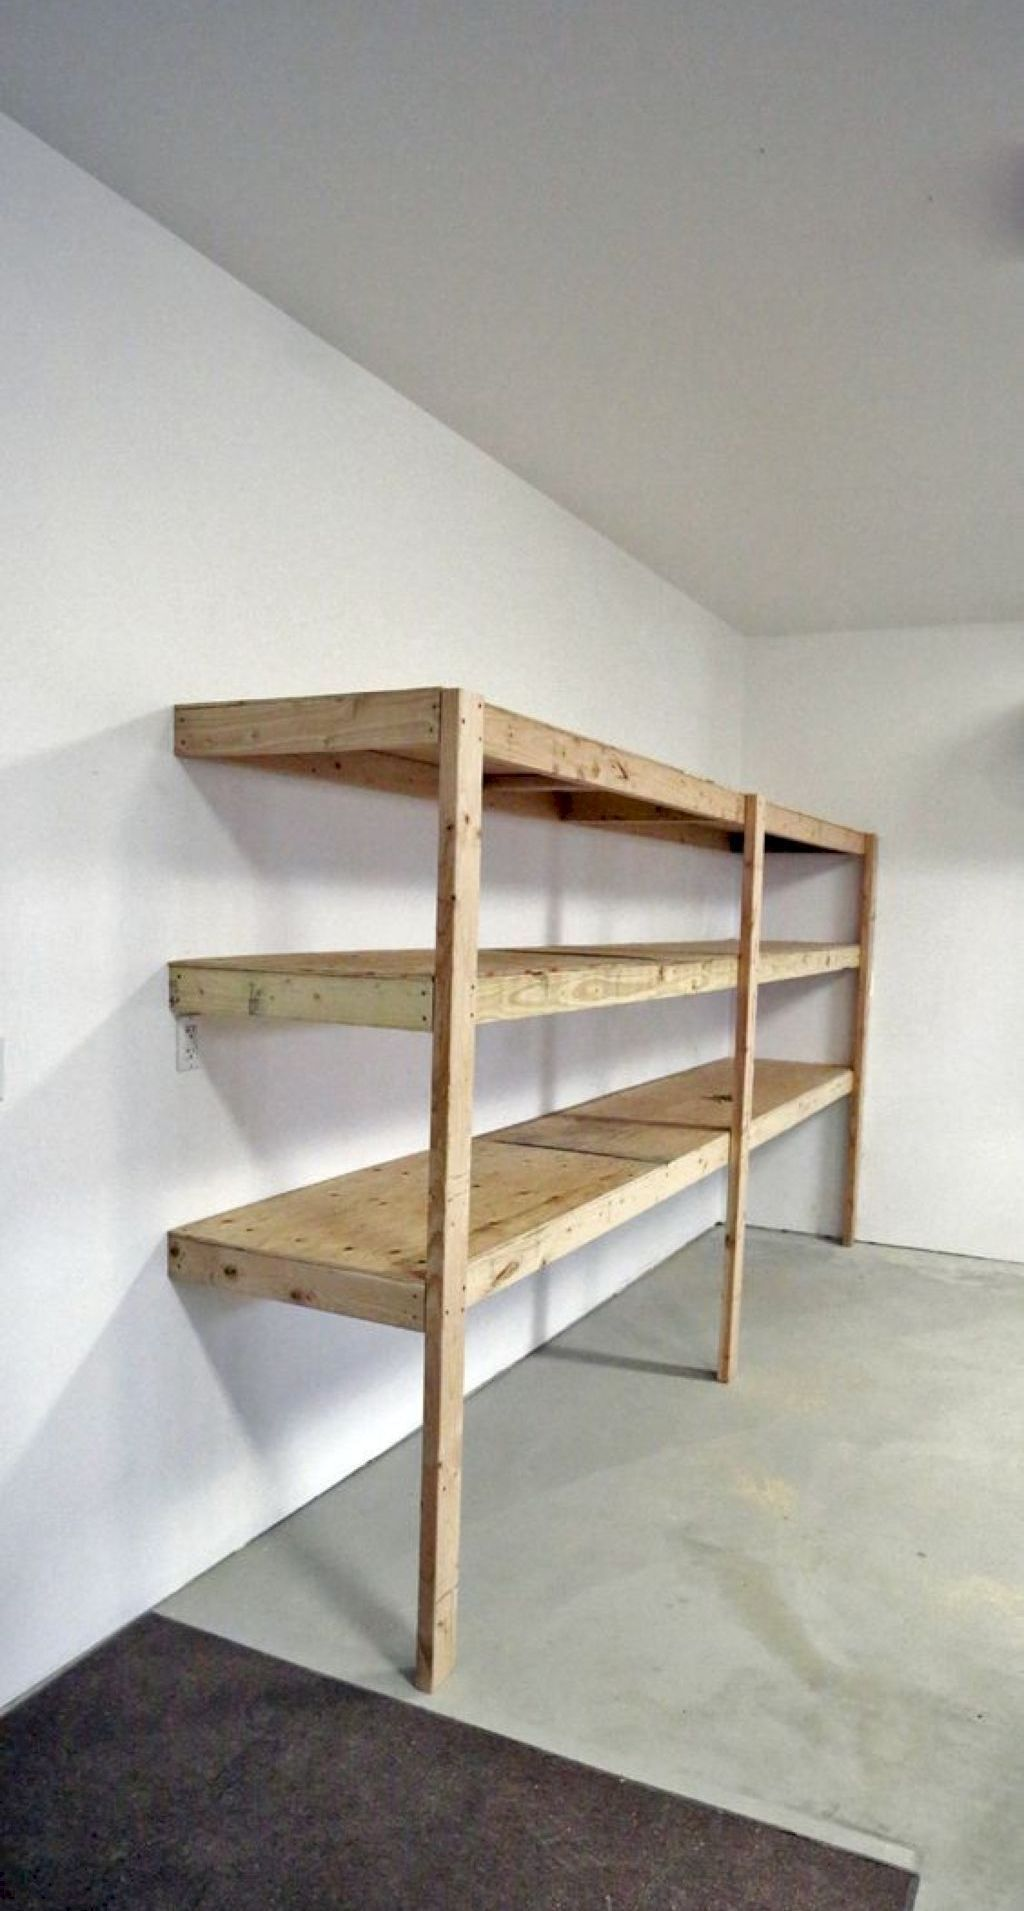 pin floating shelves ideas diy garage storage basement shelving adding kitchen best shoe rack wall melbourne upper cabinet dimensions tall glass unit inch shelf dish solutions